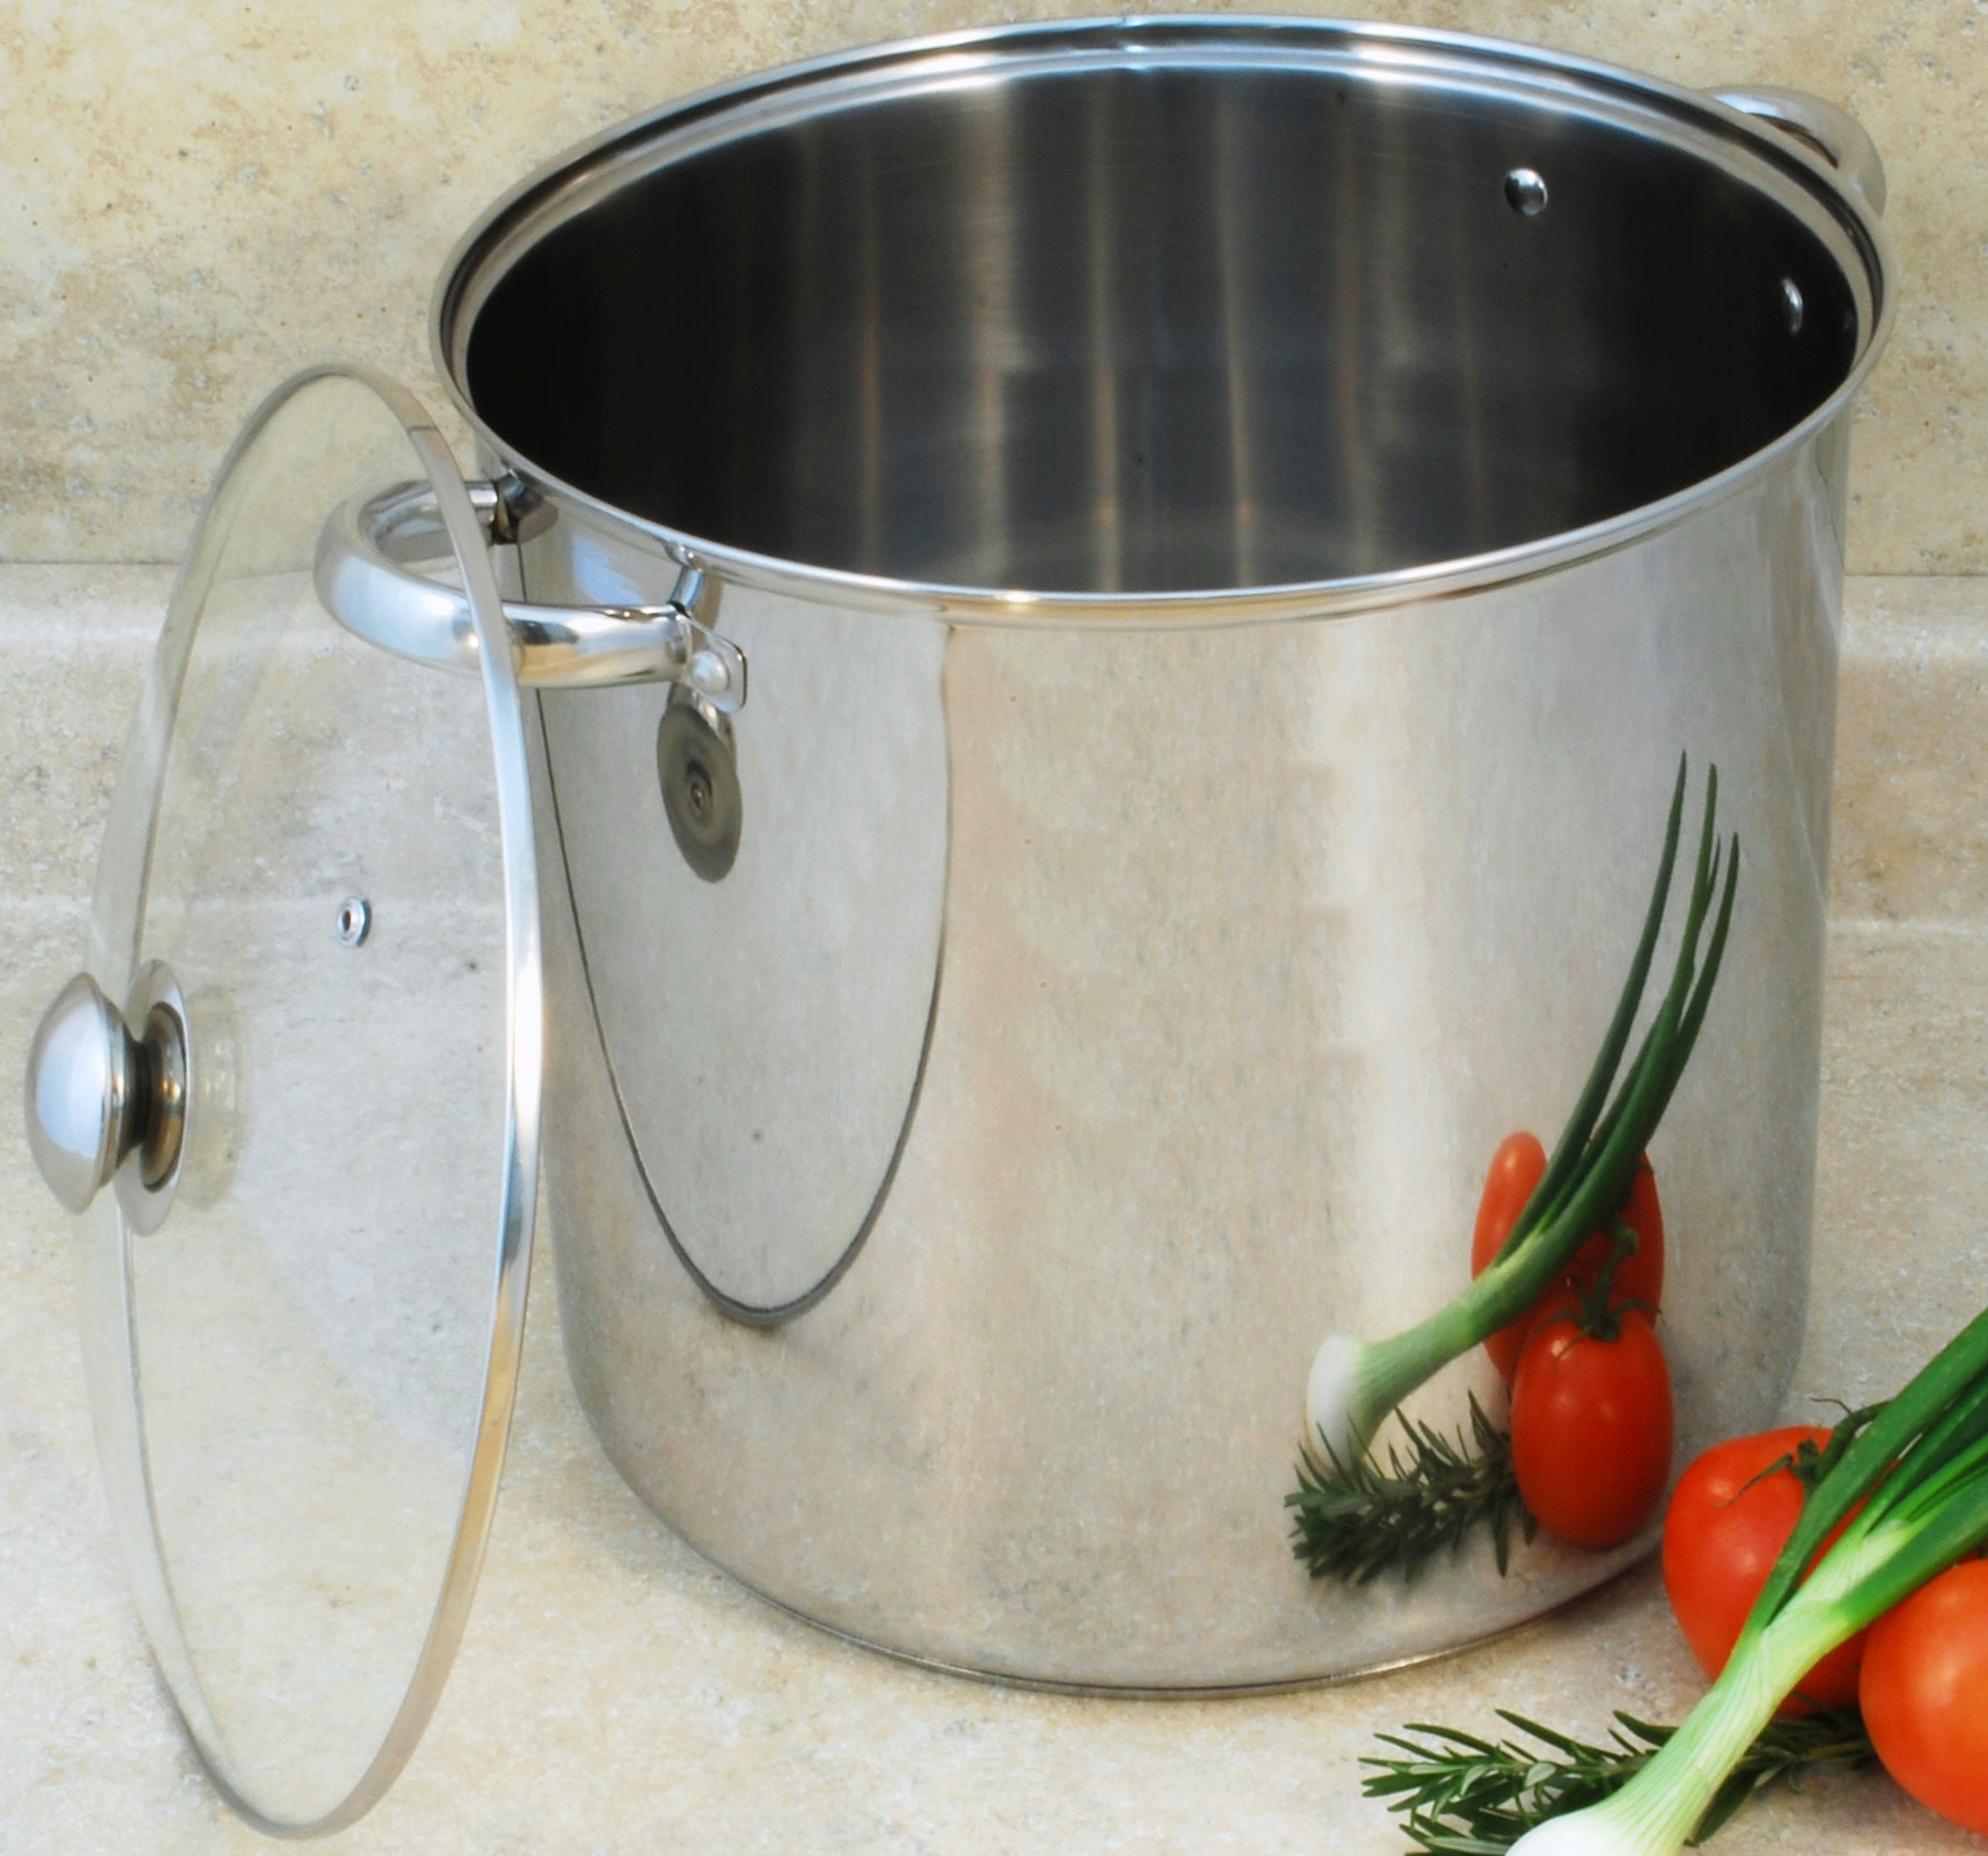 Stainless Steel 8-quart Stockpot with Encapsulated Base